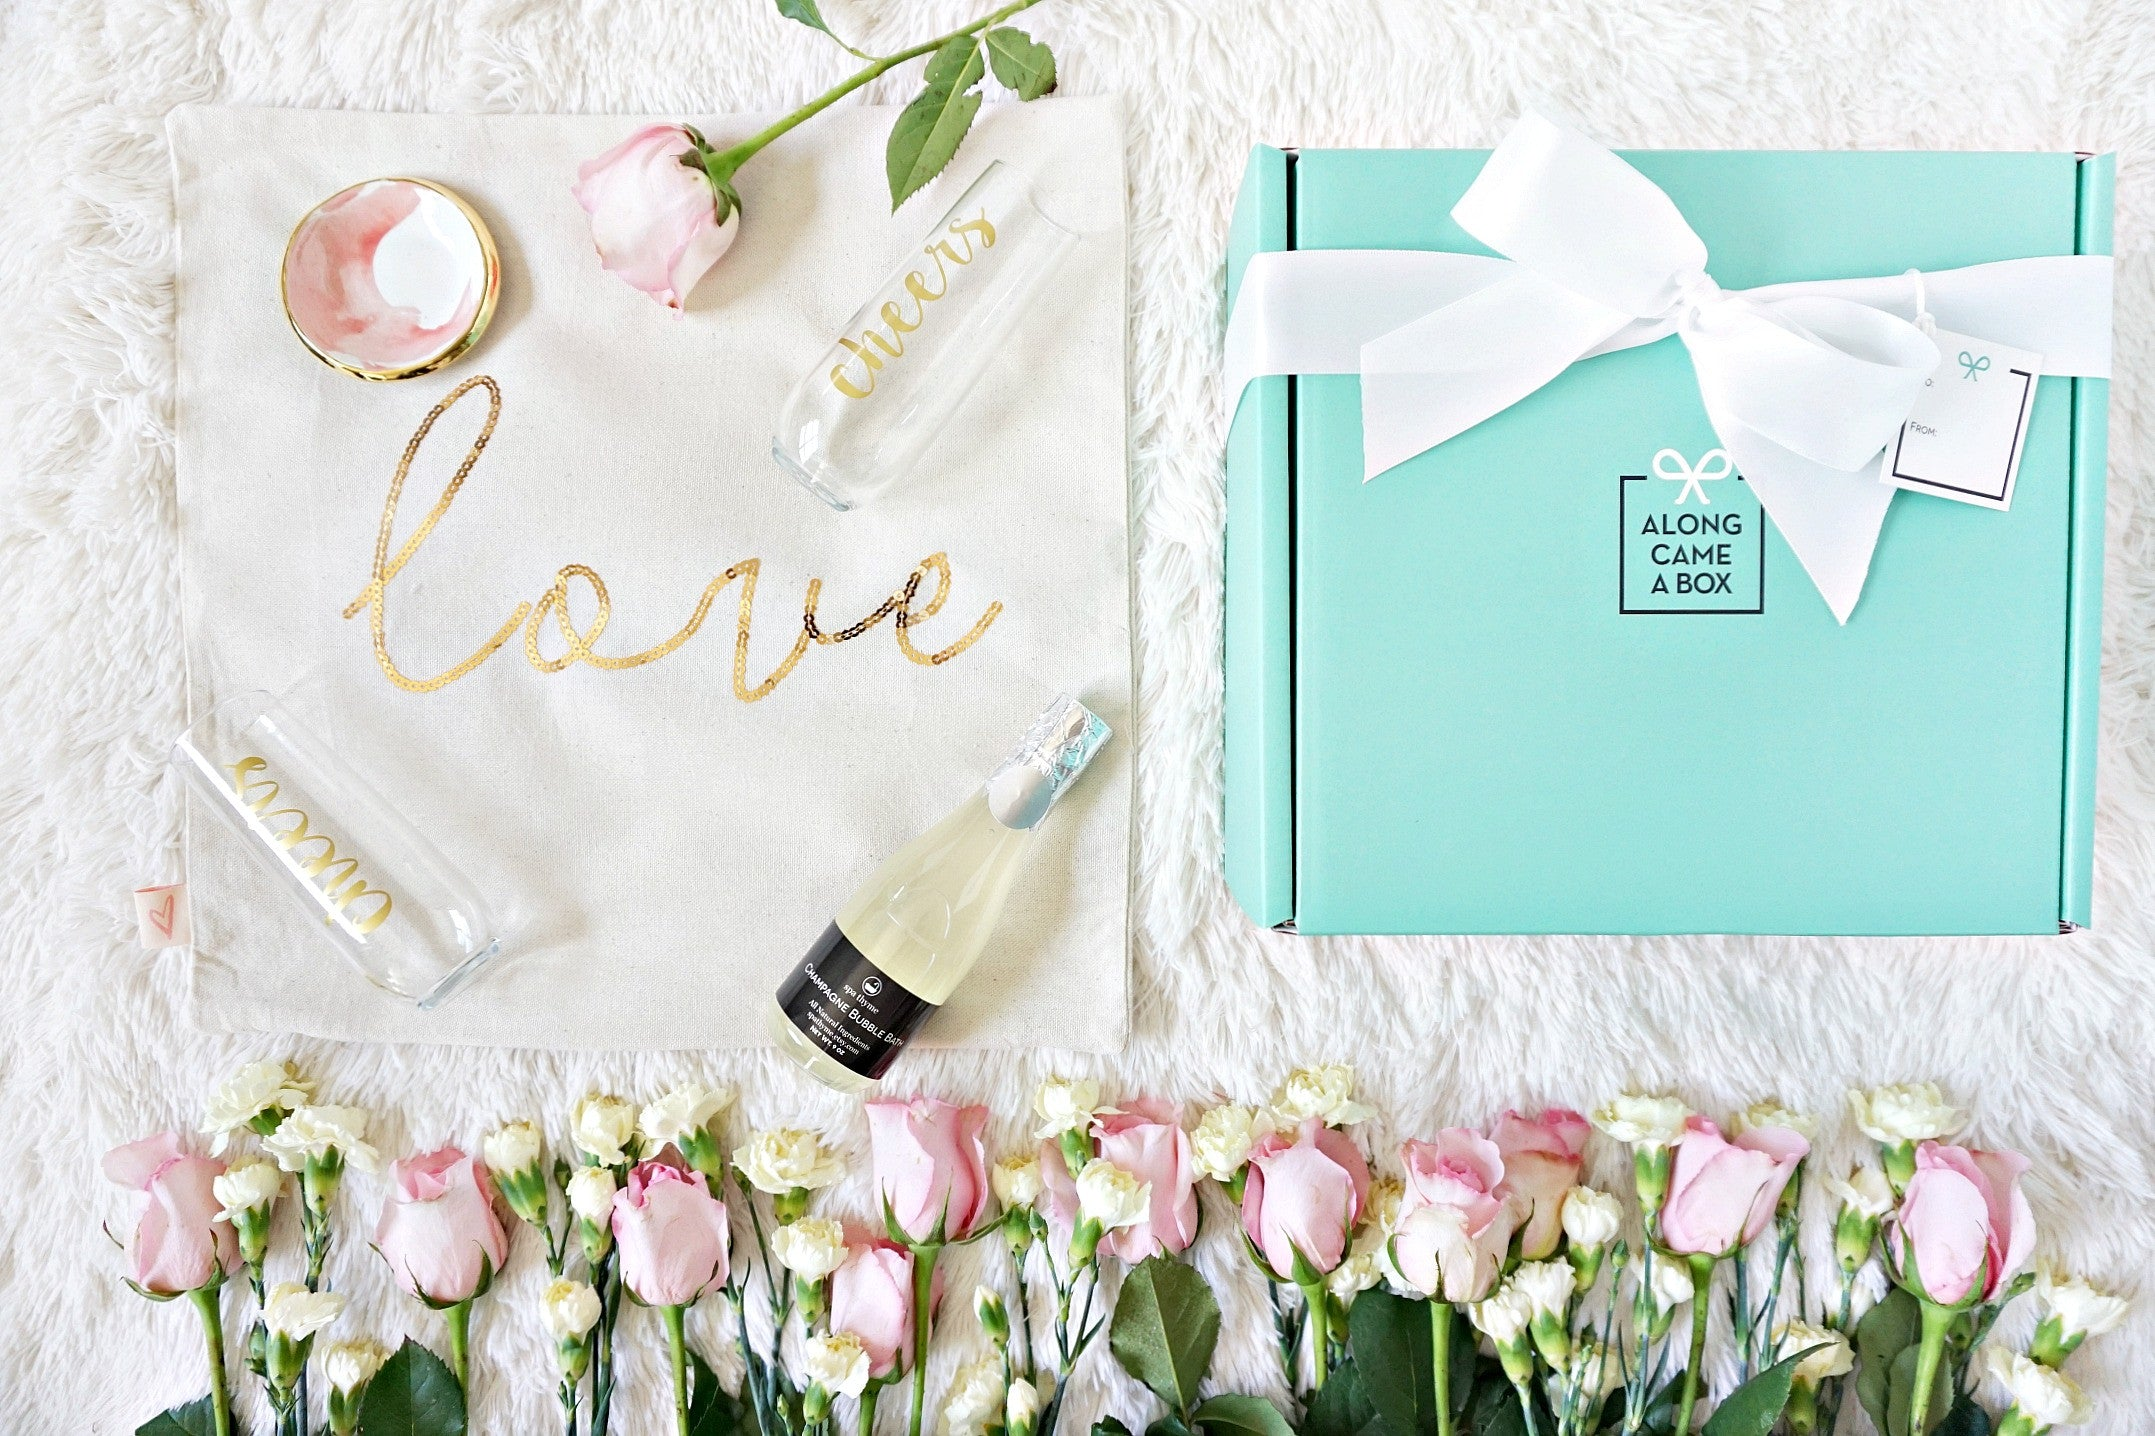 The Couple's Box